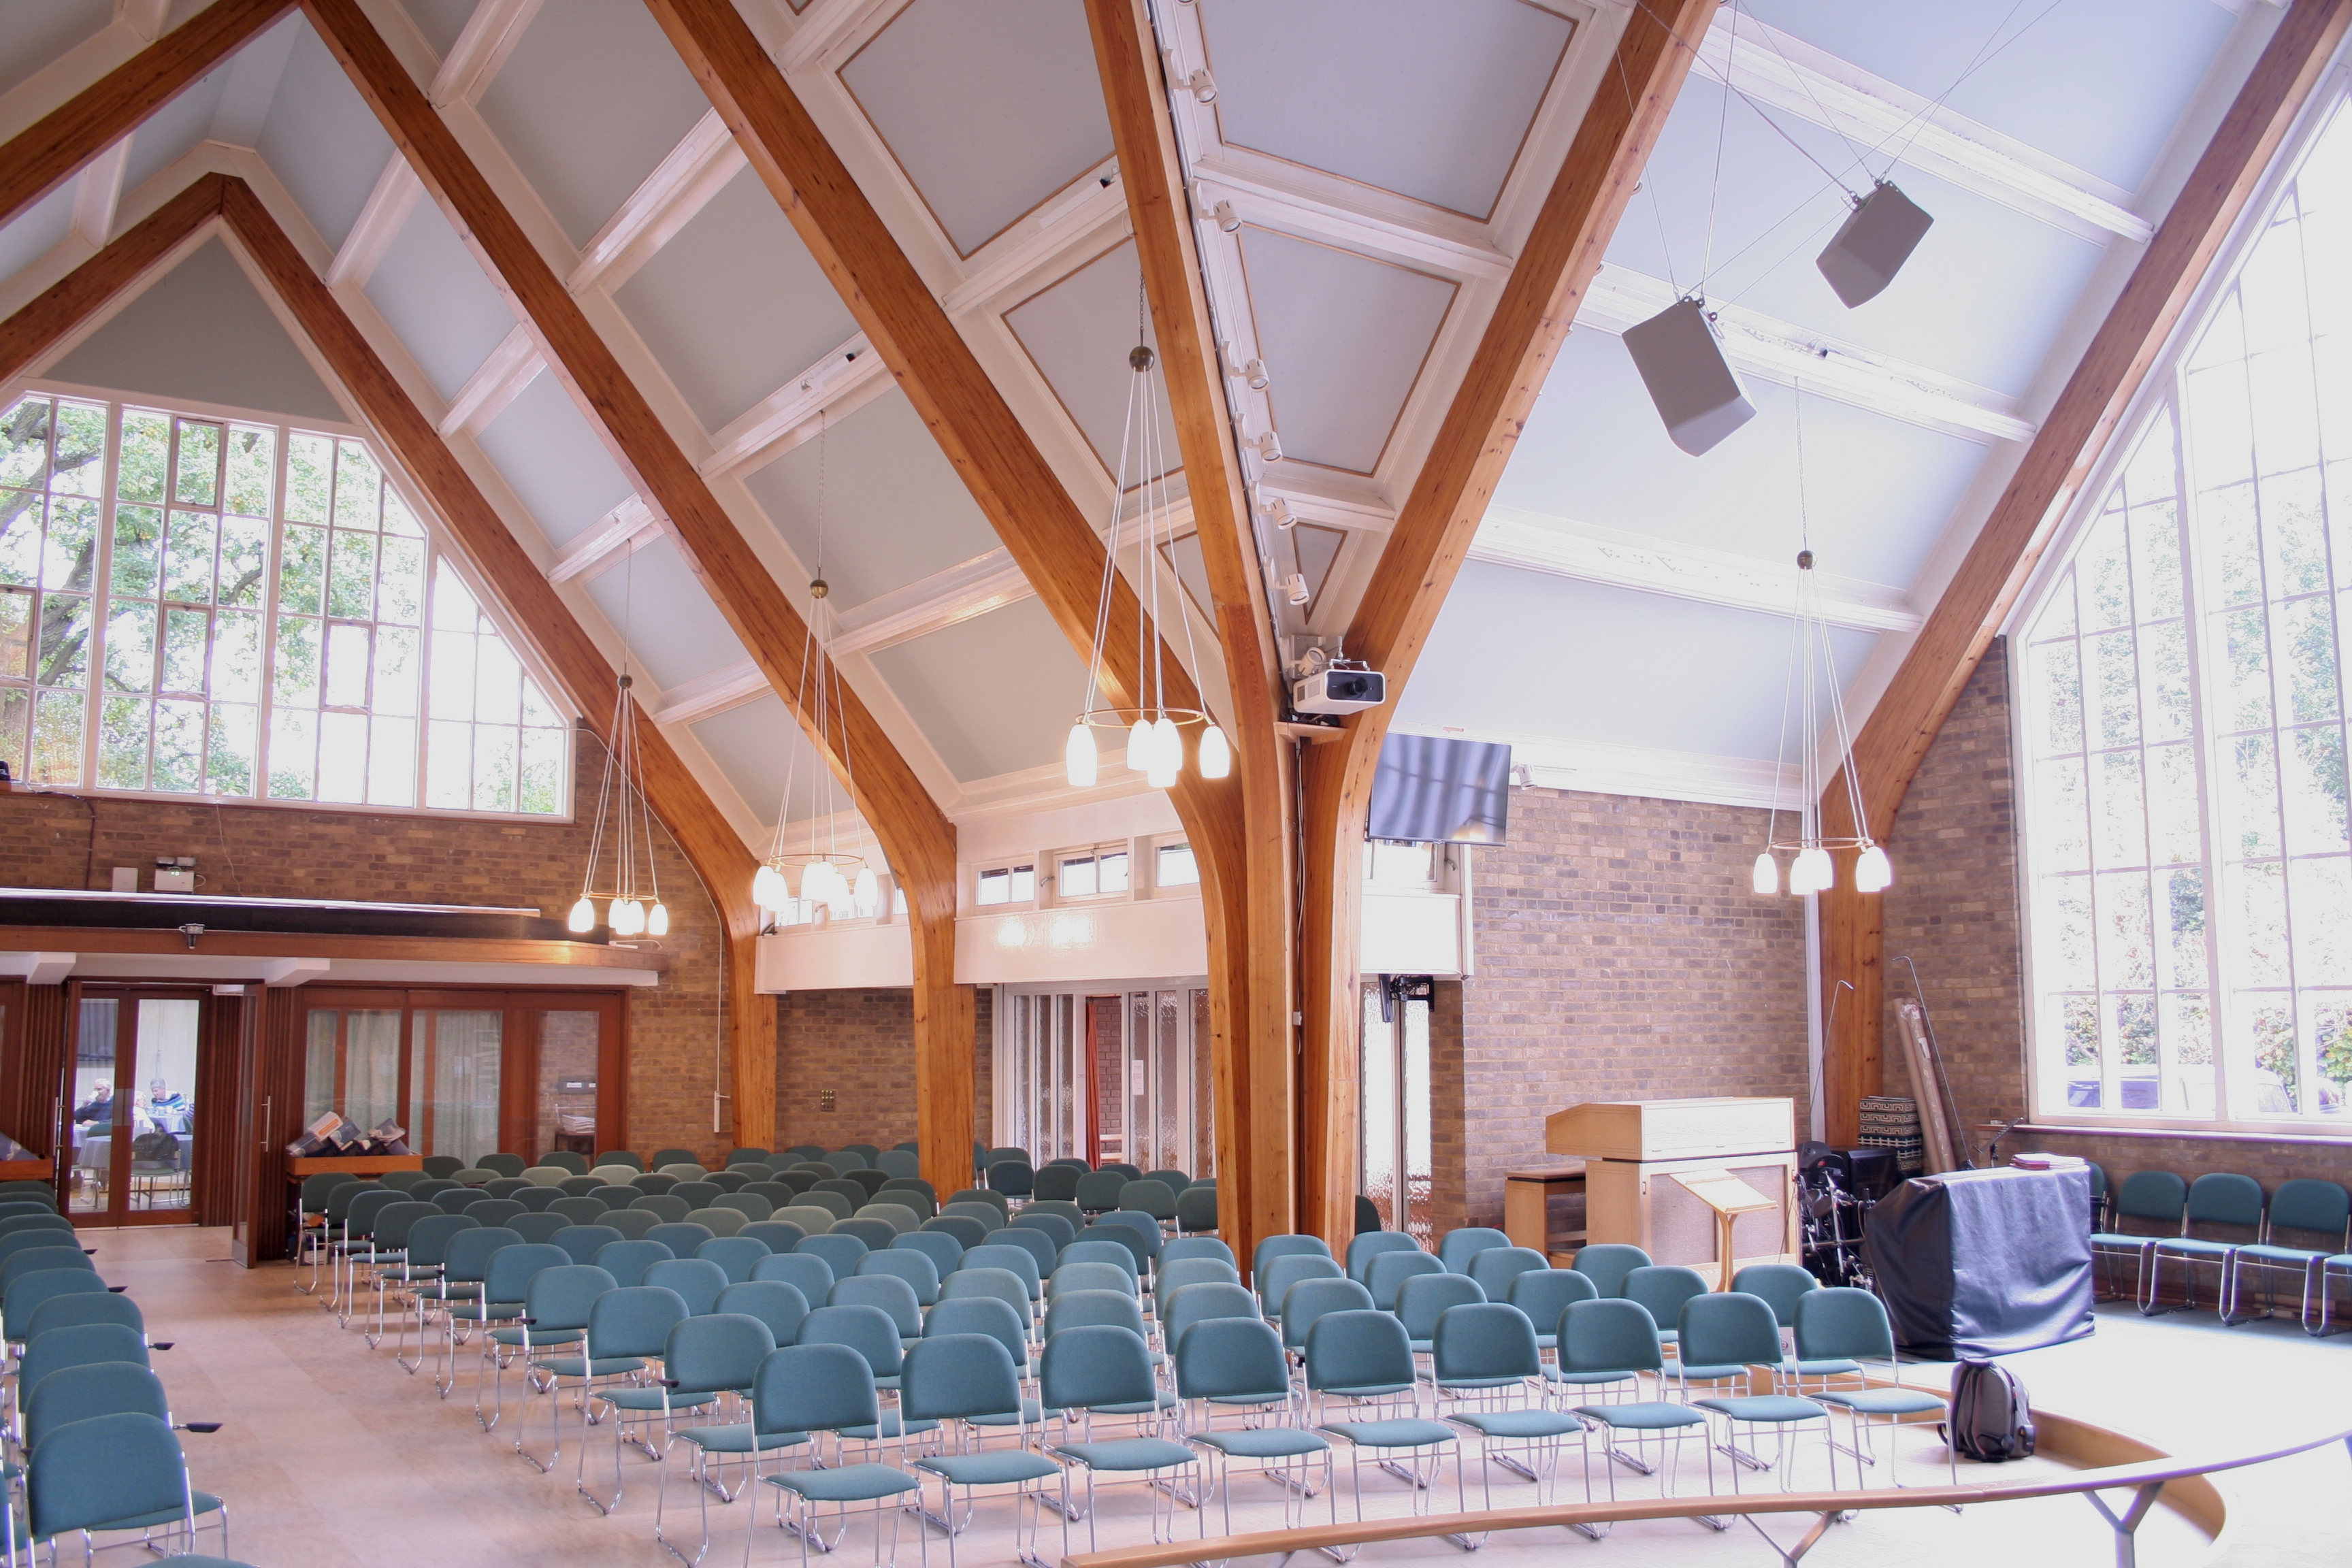 Church Projectors And Video Display Systems